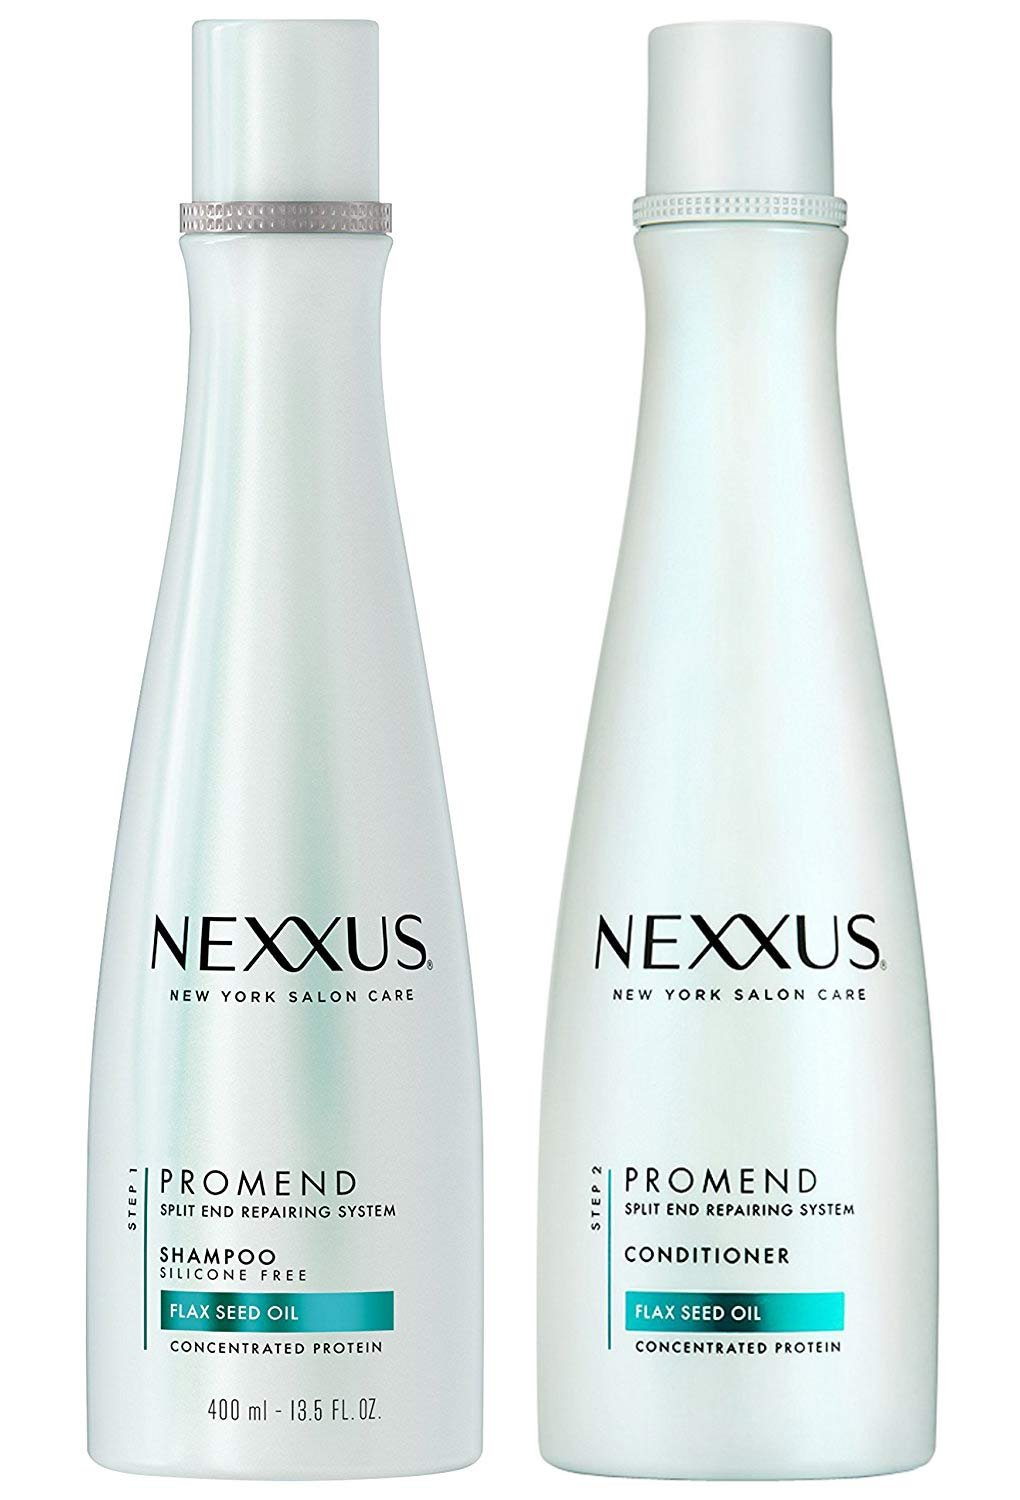 Nexxus PROMEND Split End Repairing System FLAX SEED OIL Concentrated Protein Shampoo and Conditioner, Duo Set 13.5 oz EA